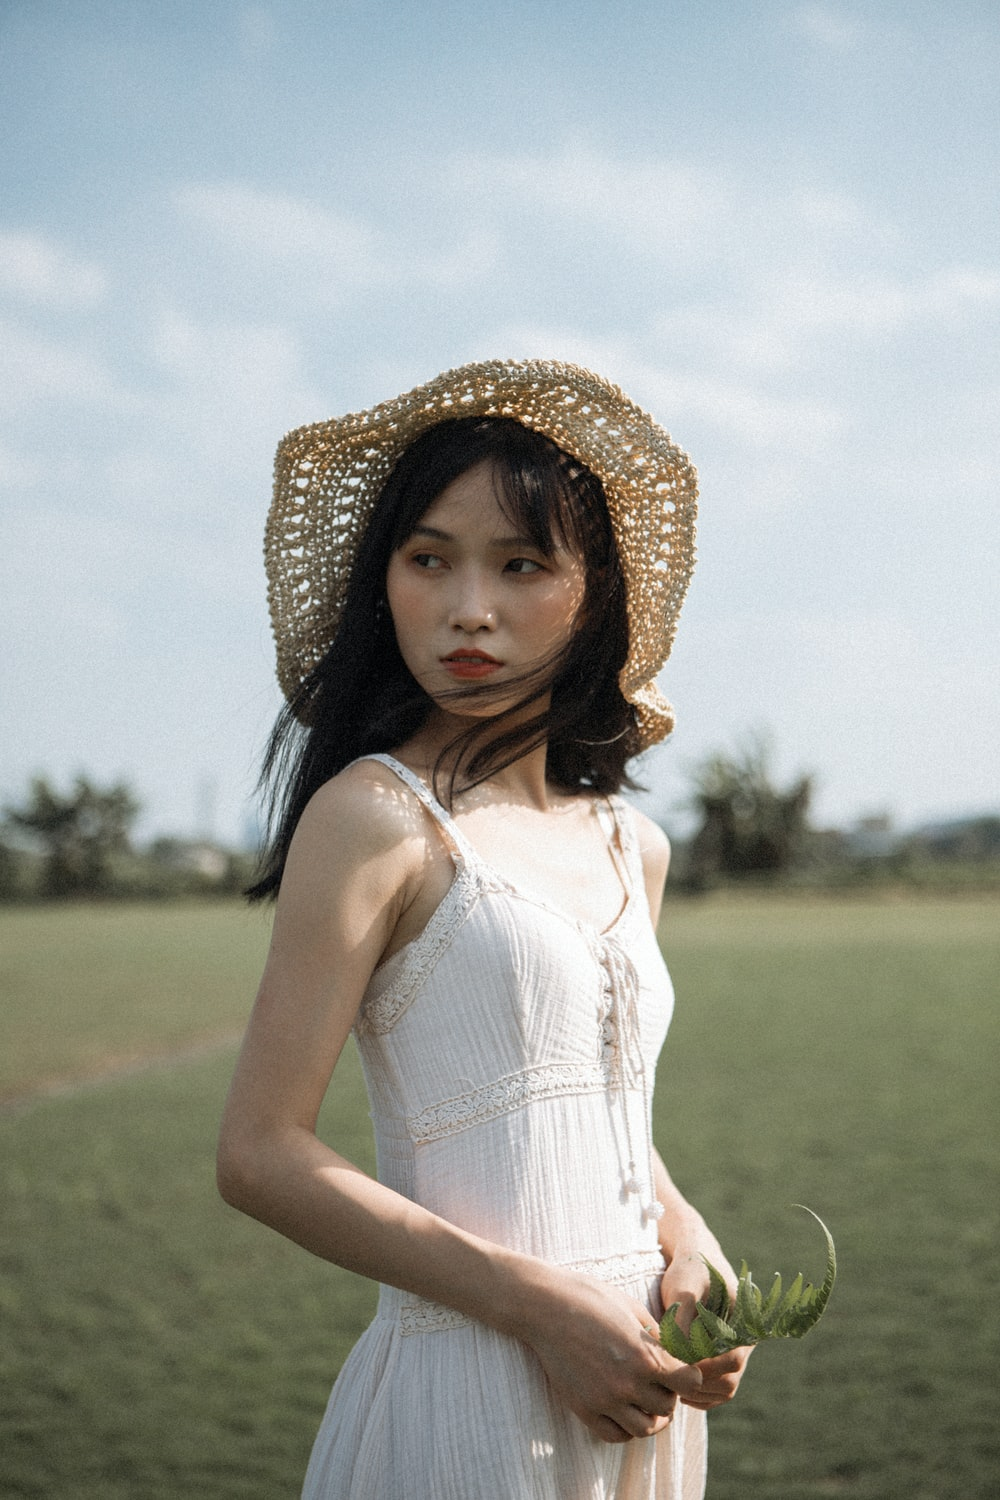 woman wears hat and white sleeveless dress at green grass